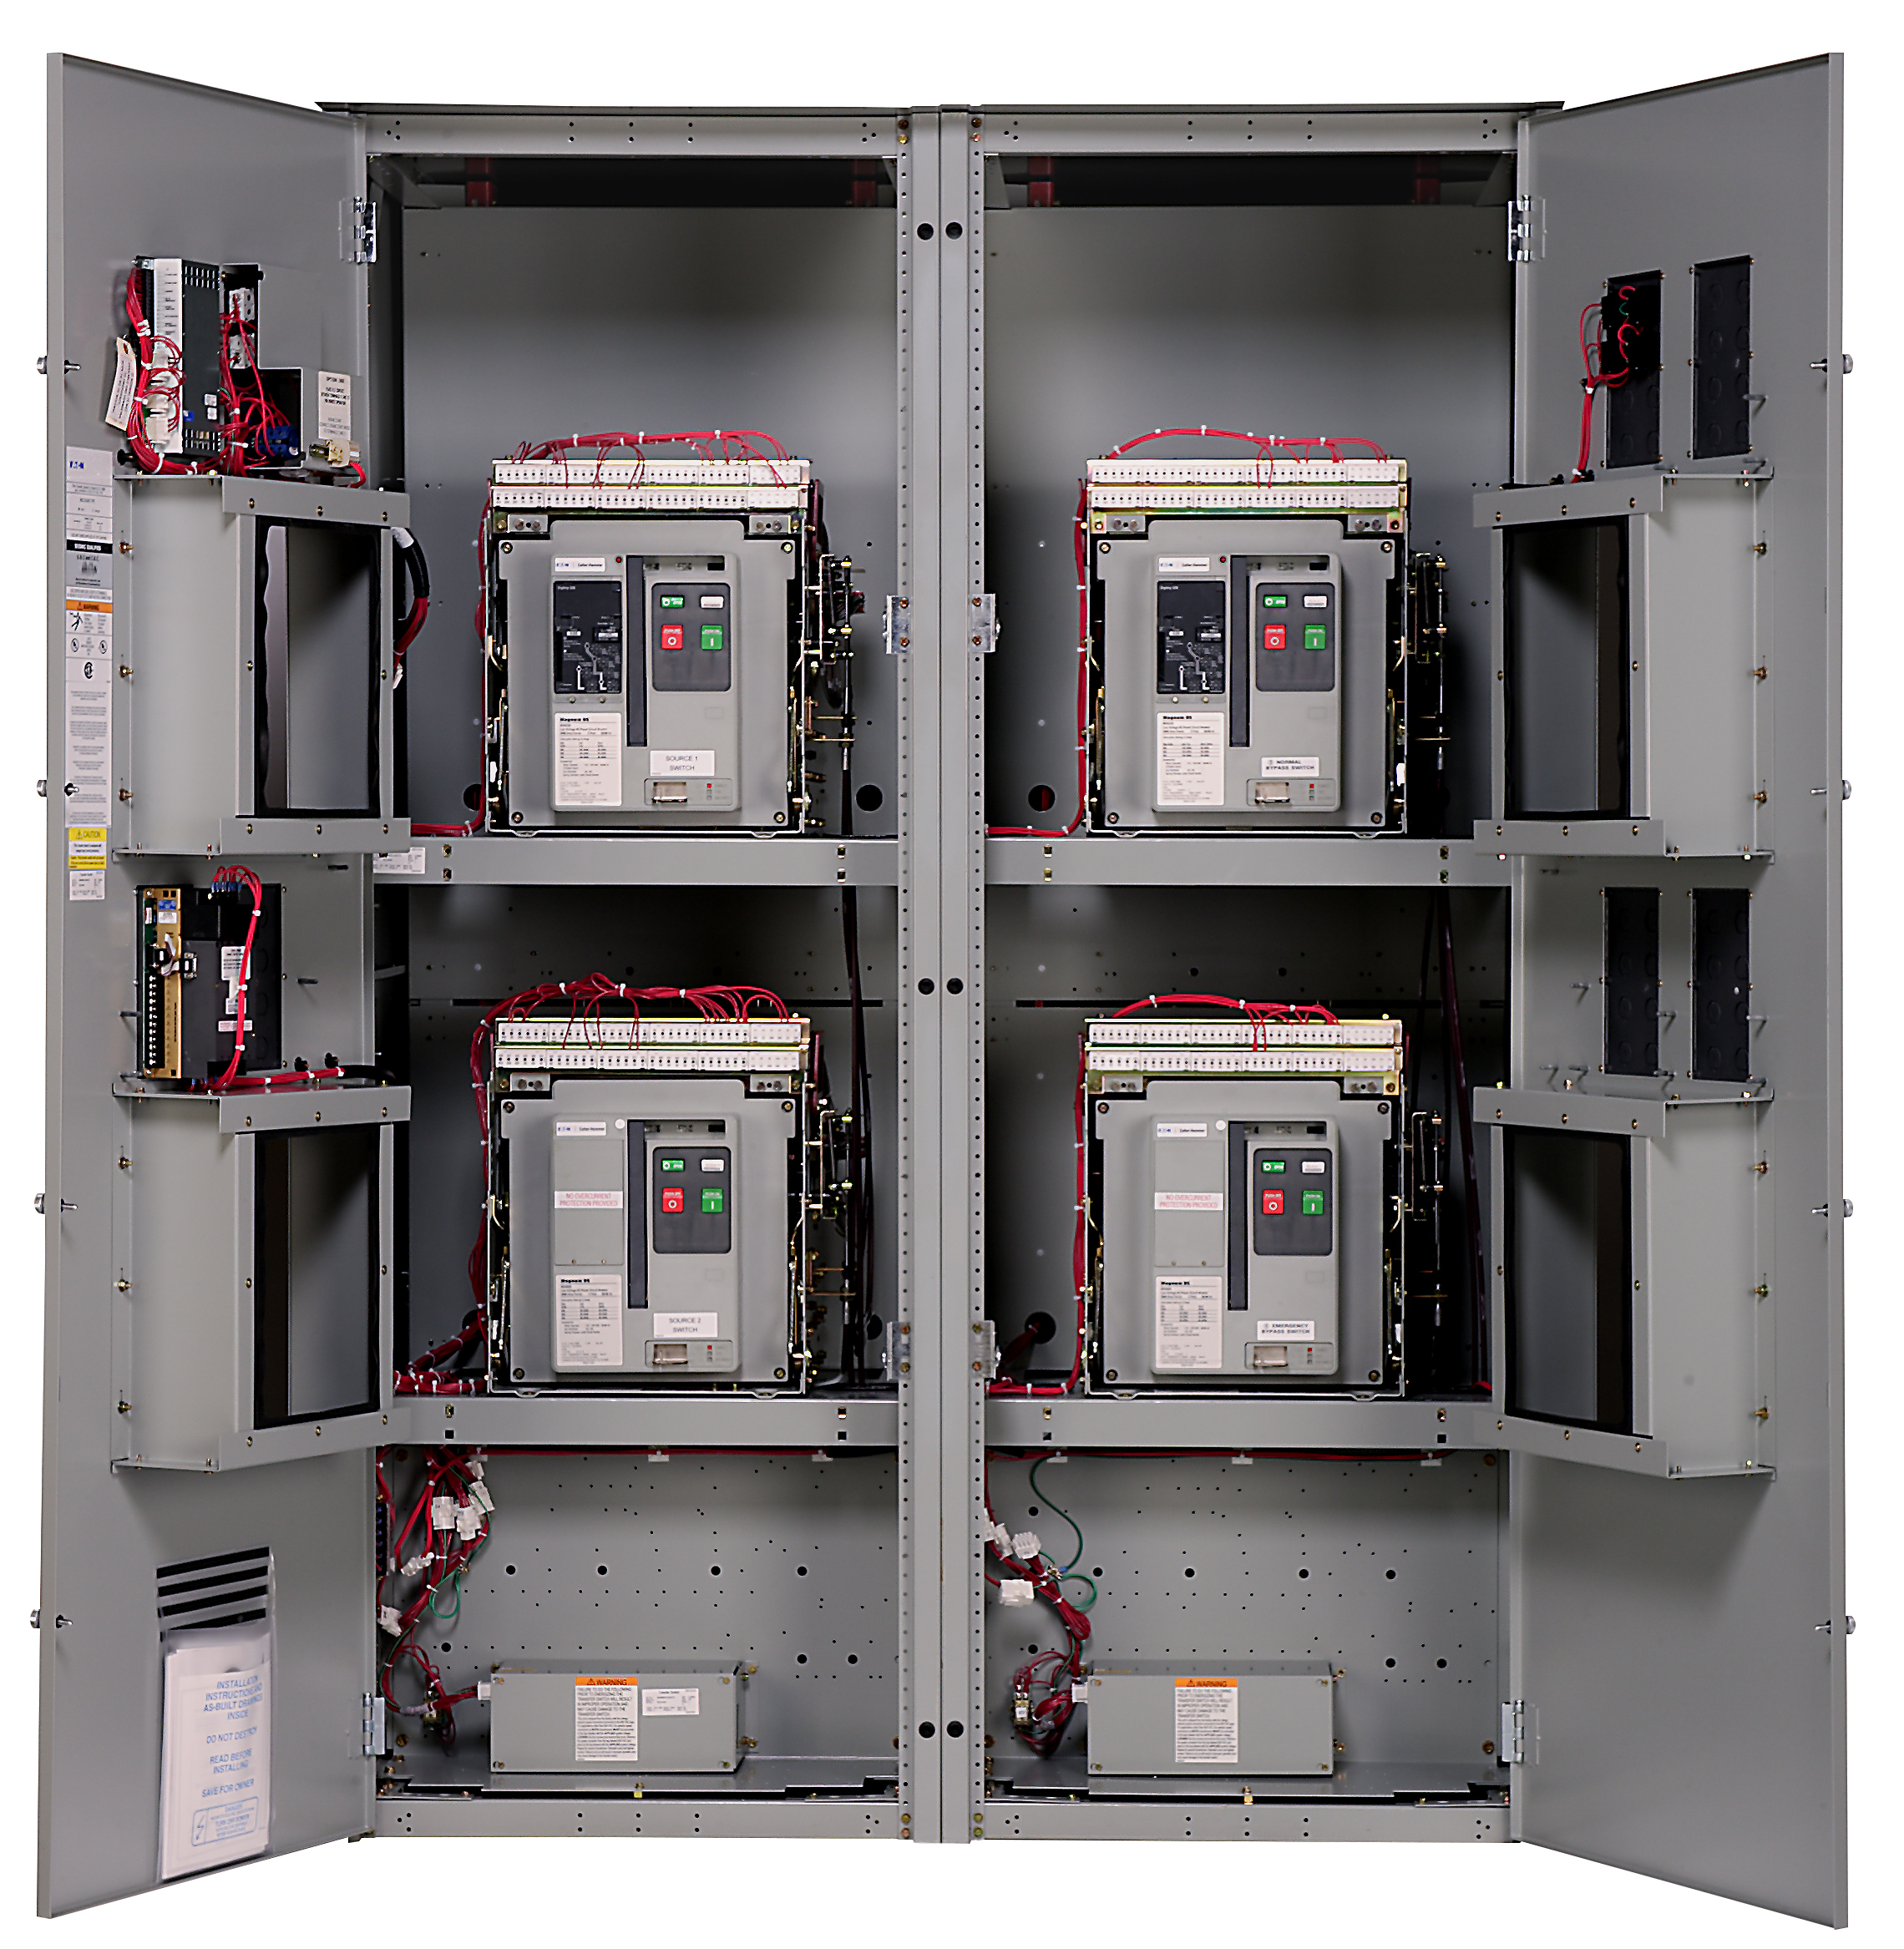 Generac Industrial Transfer Switches at Wolverine Power Systems in Michigan